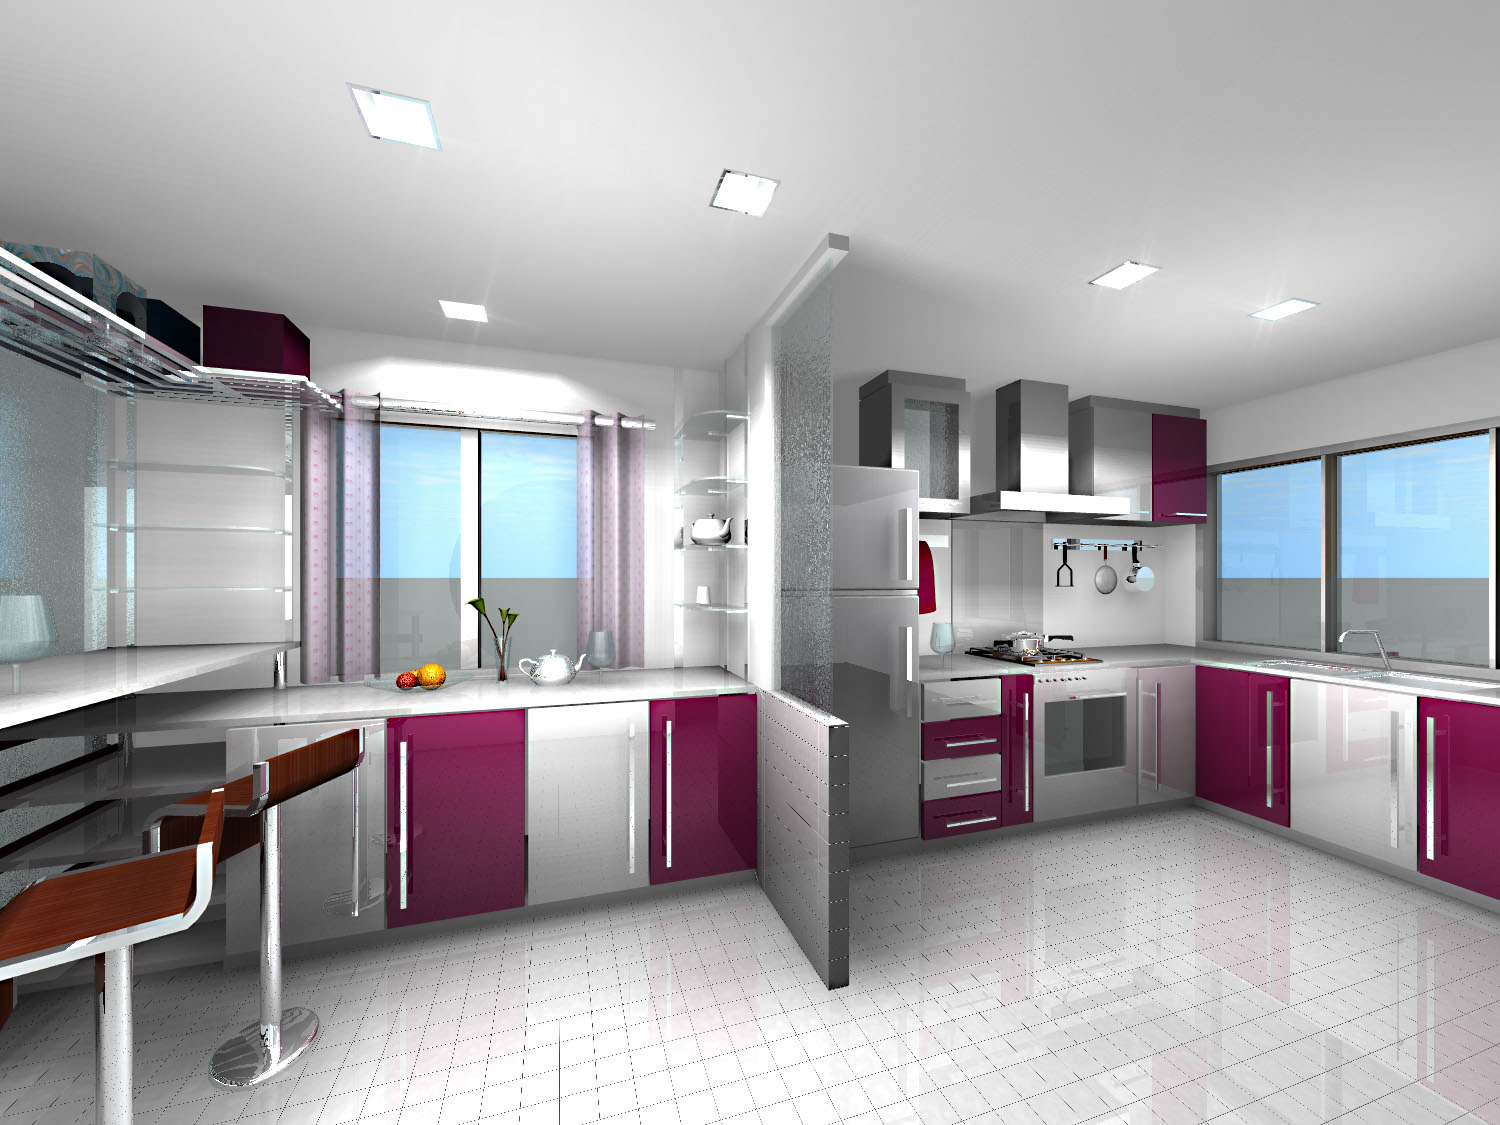 Retro Kitchen Plan In 3D Image Made By Virtual Home Depotu0027s Kitchen Design  Software